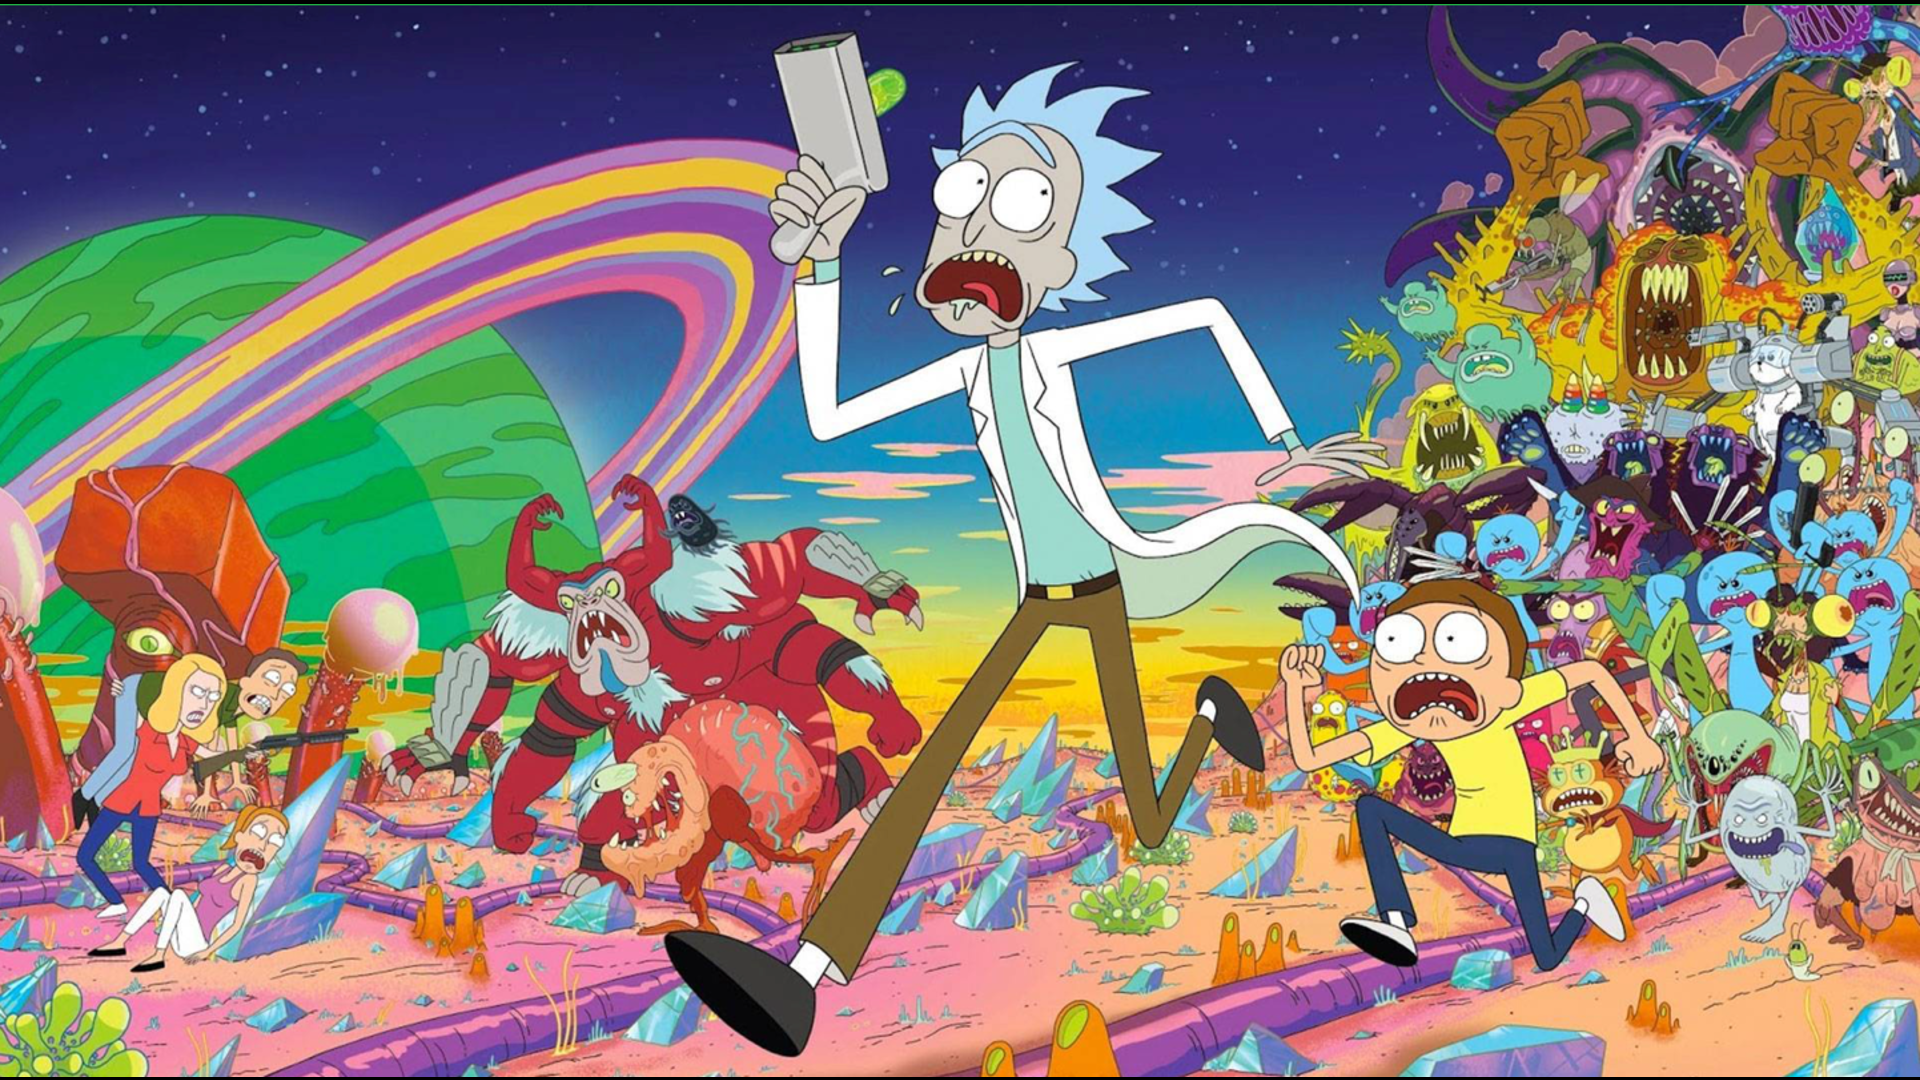 more disturbing content produced by rick and morty creators unearthed